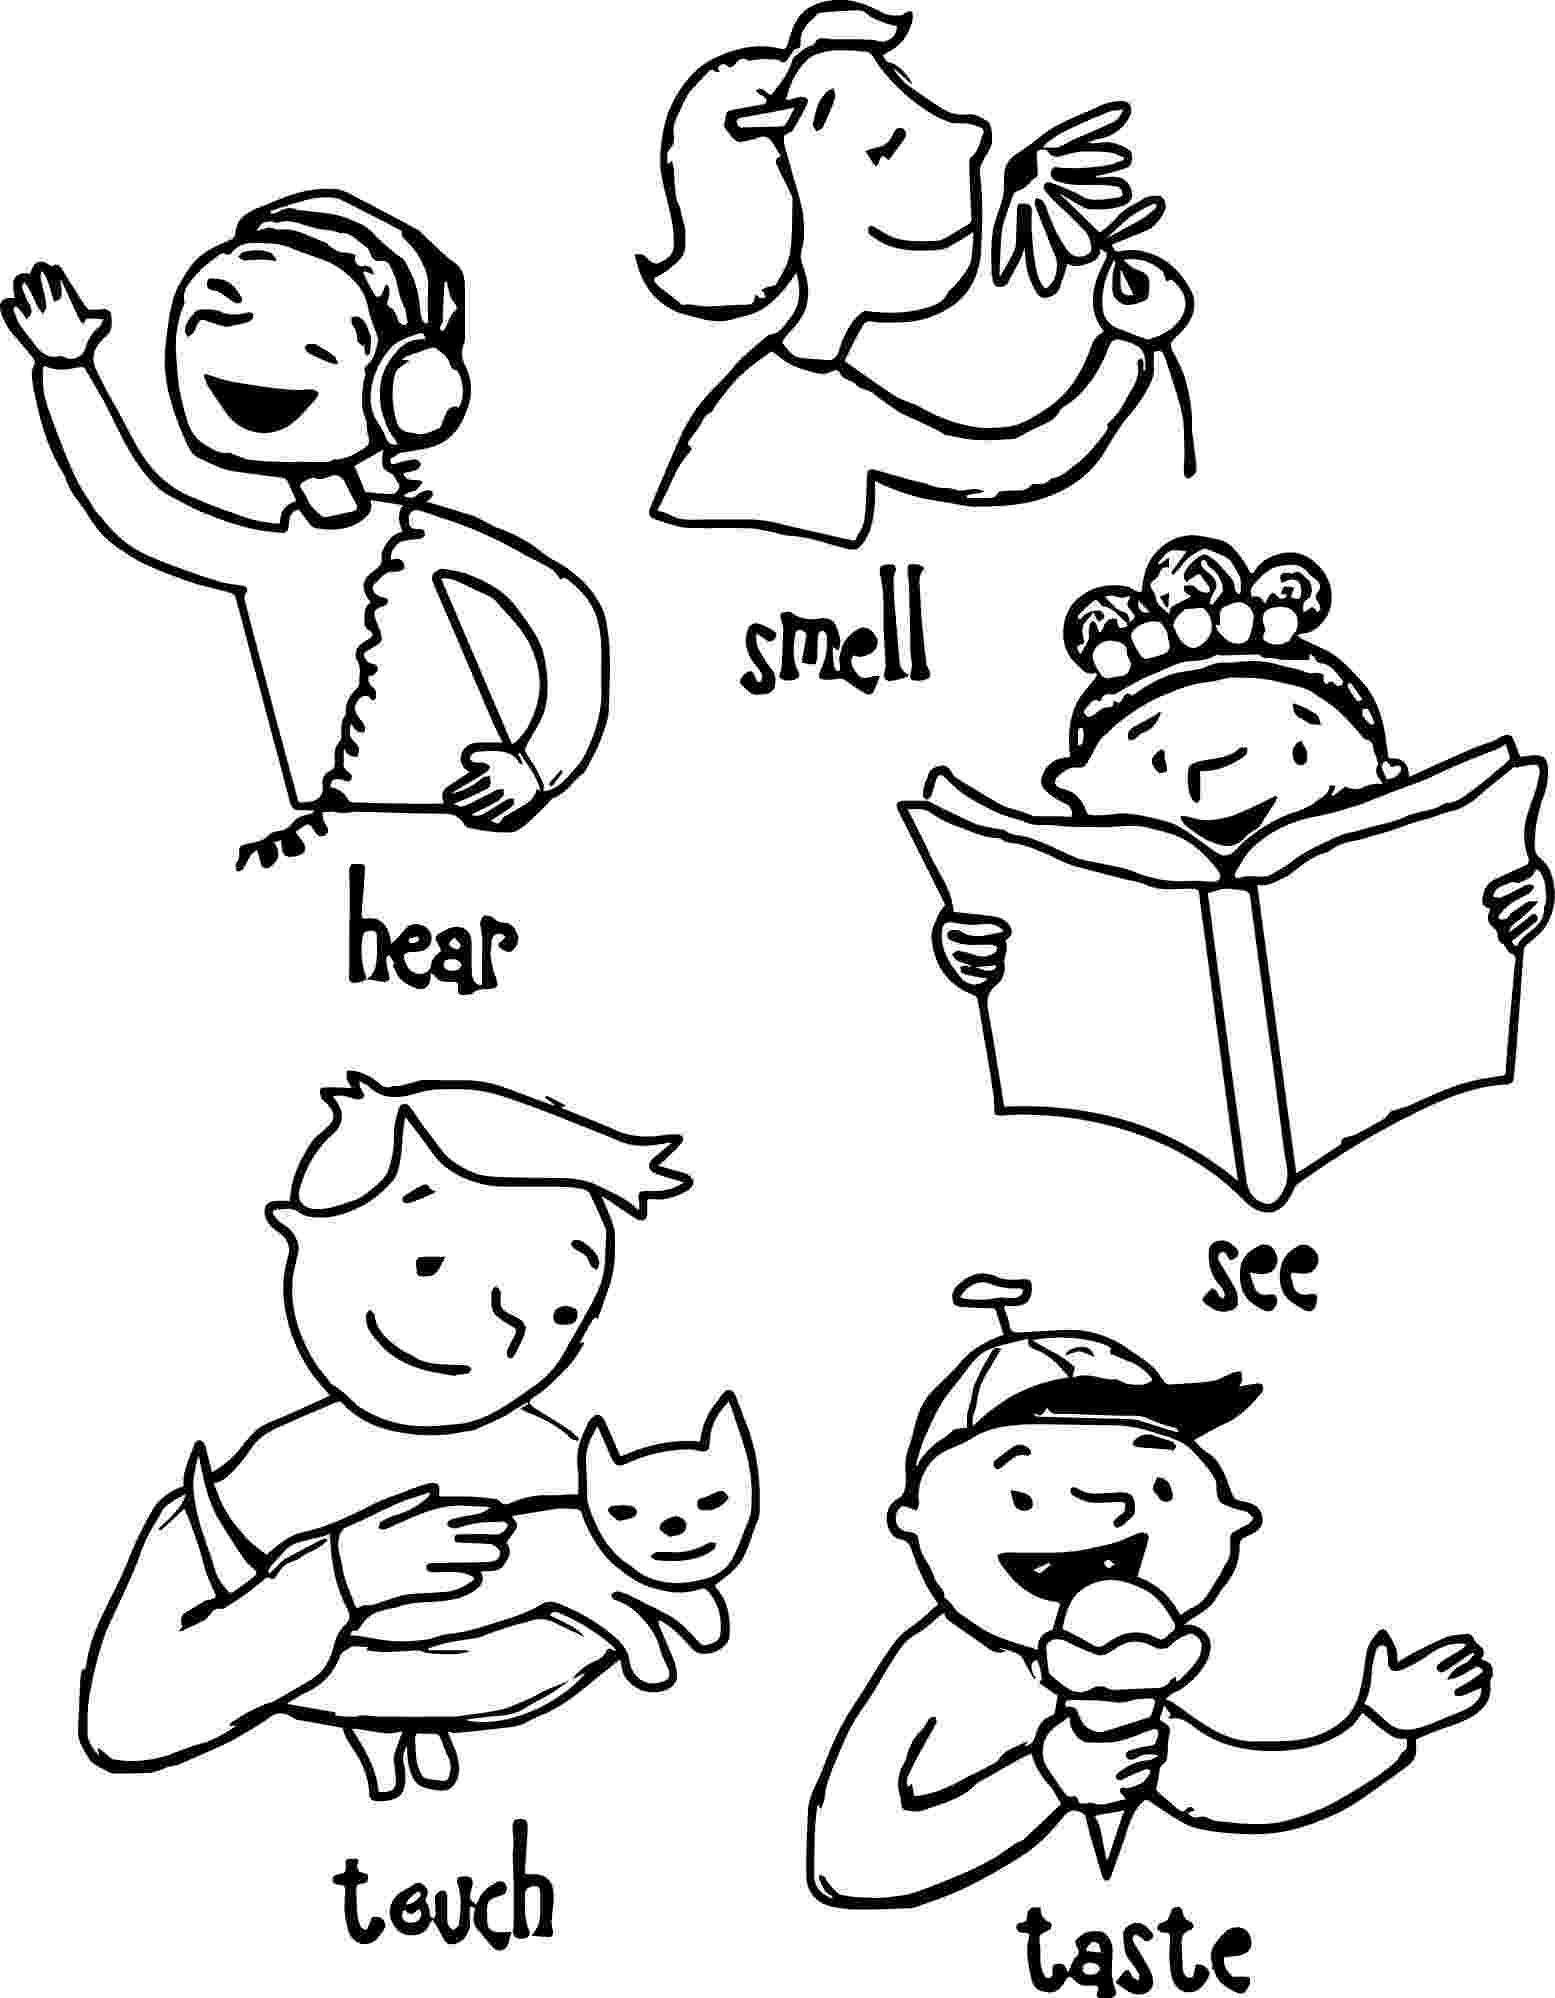 five senses coloring pages five senses coloring pages coloring home pages coloring senses five